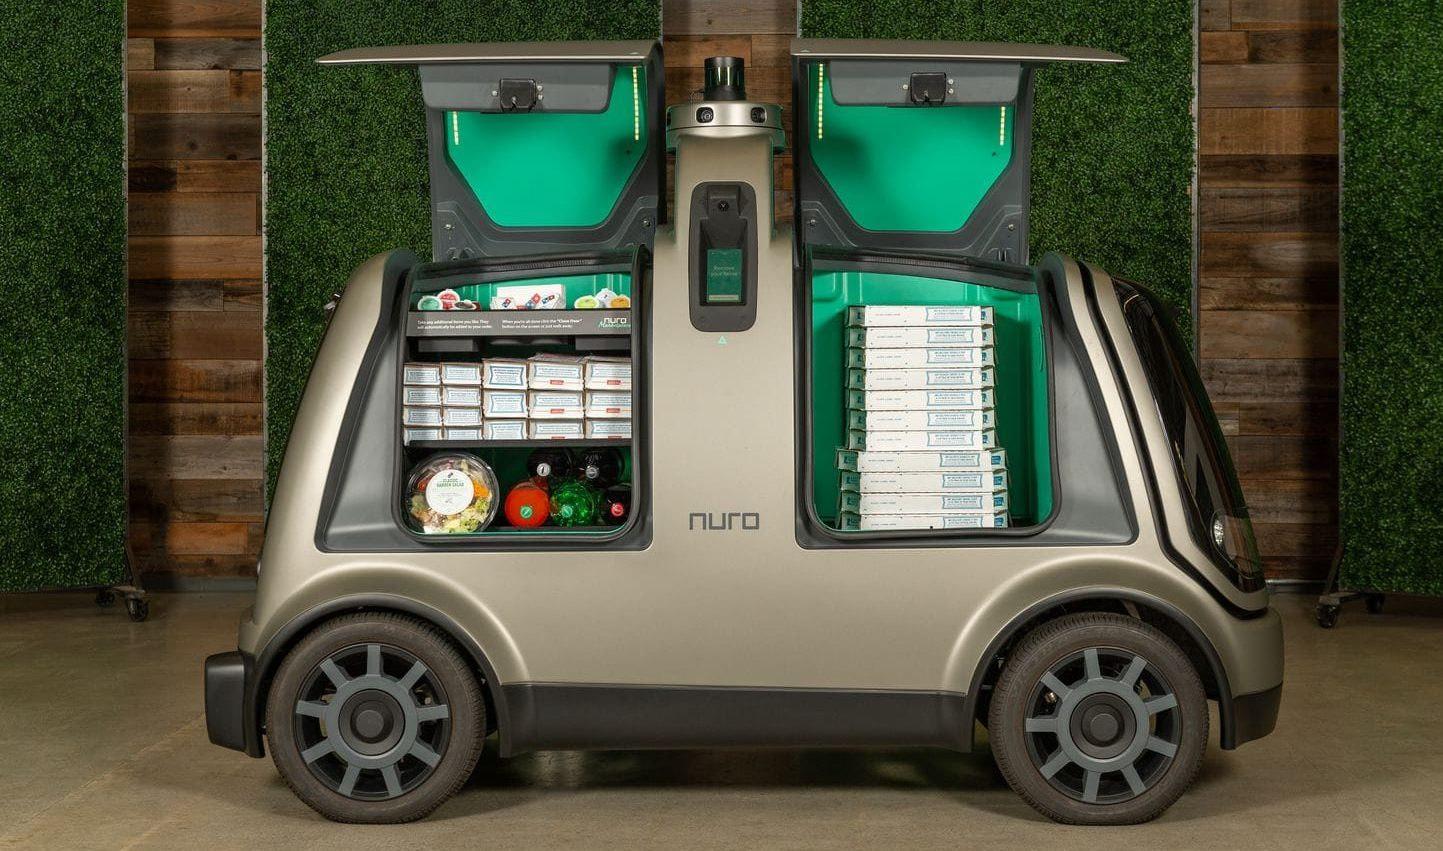 this is a photo of an earlier model of Nuro's self-driving pizza delivery car designed for Domino's